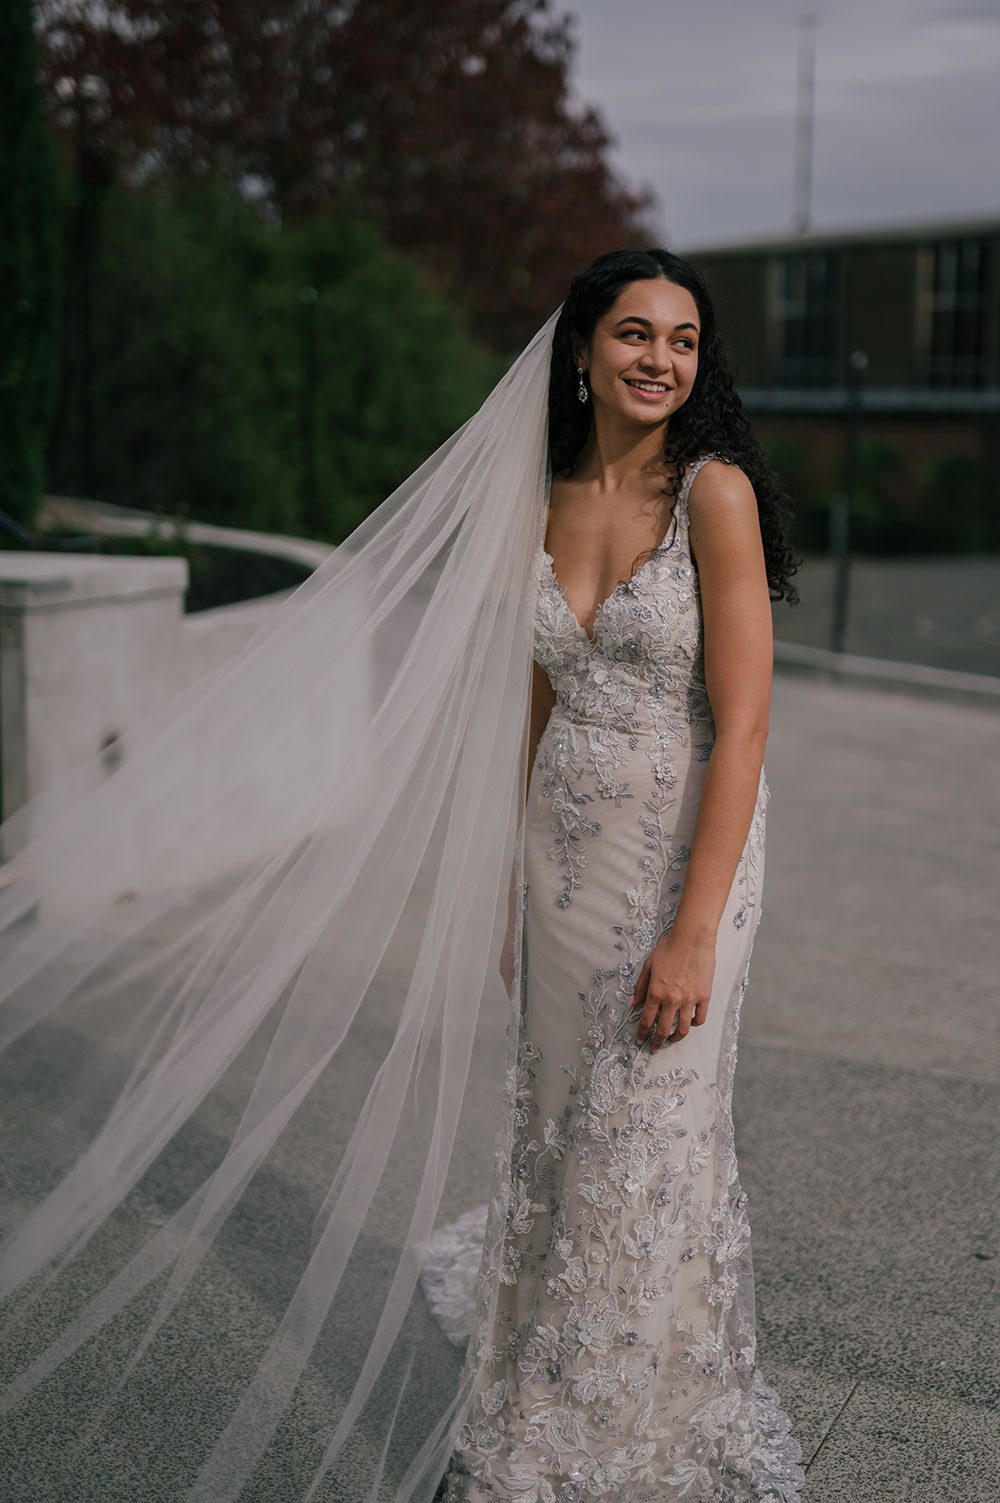 Bride wearing Kazumi Gown in soft grey with hand embellished lace and a low back - outside veil in wind